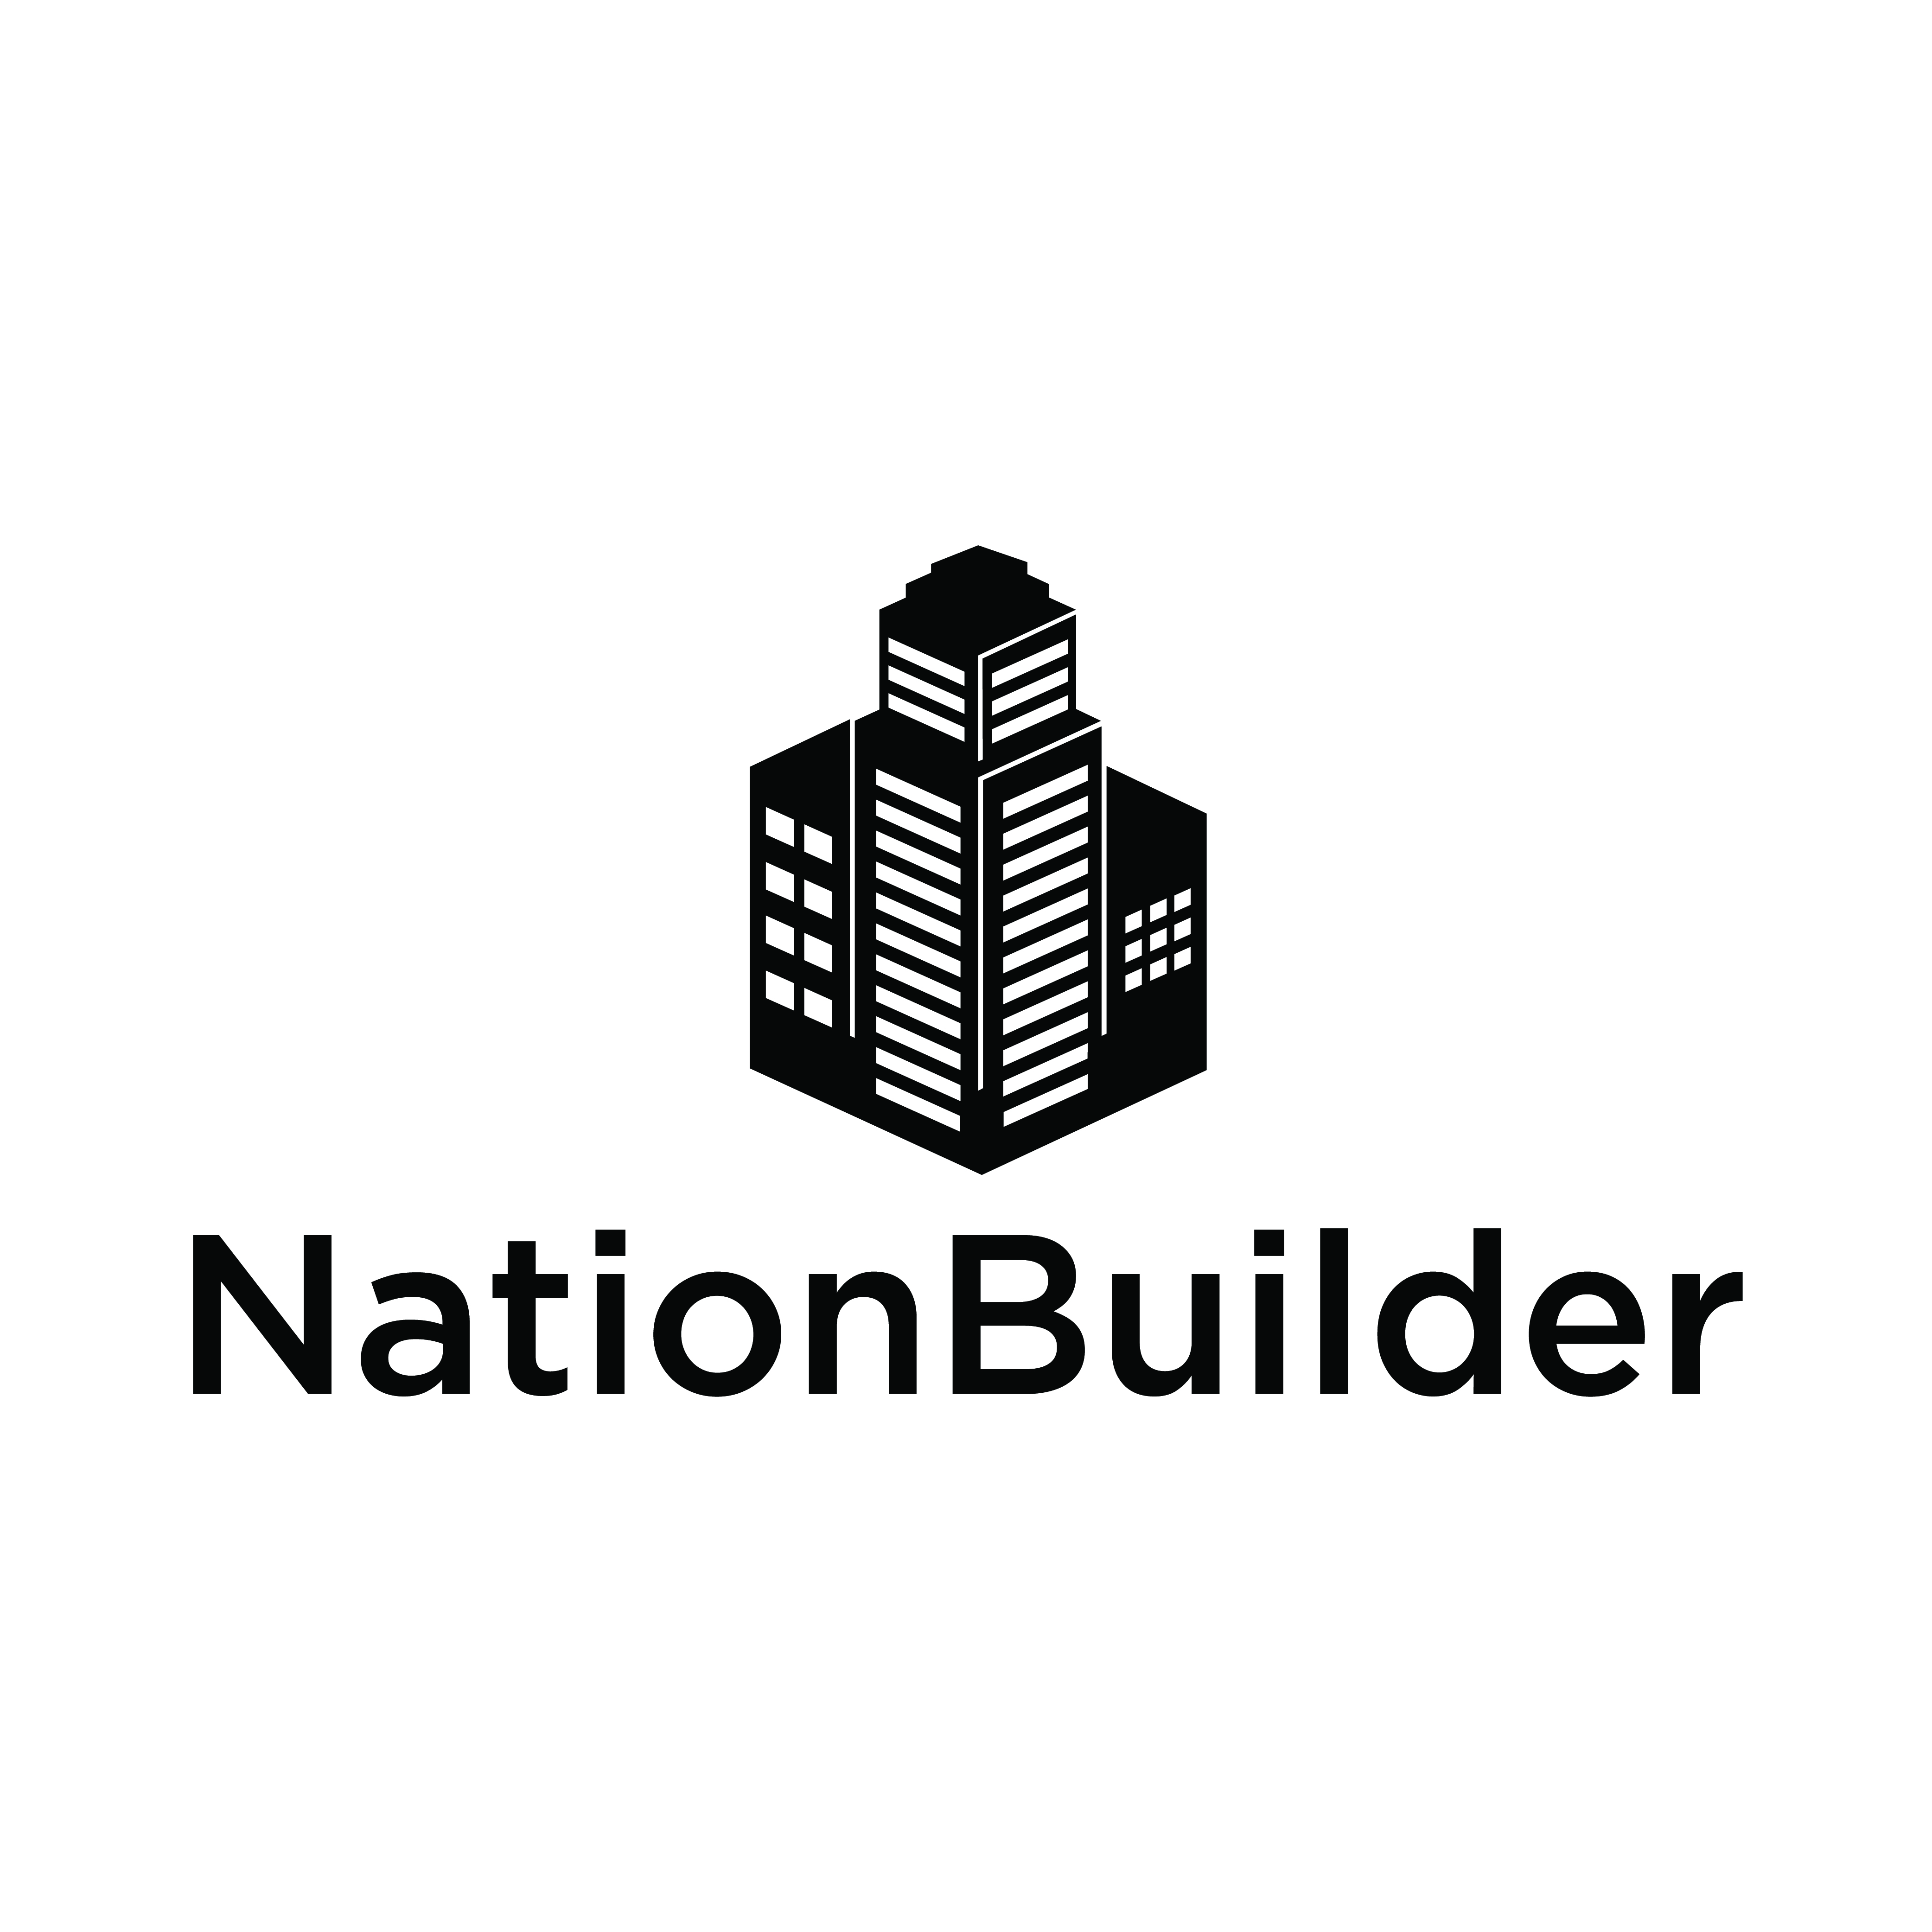 nationbuilder-logo-black.jpg